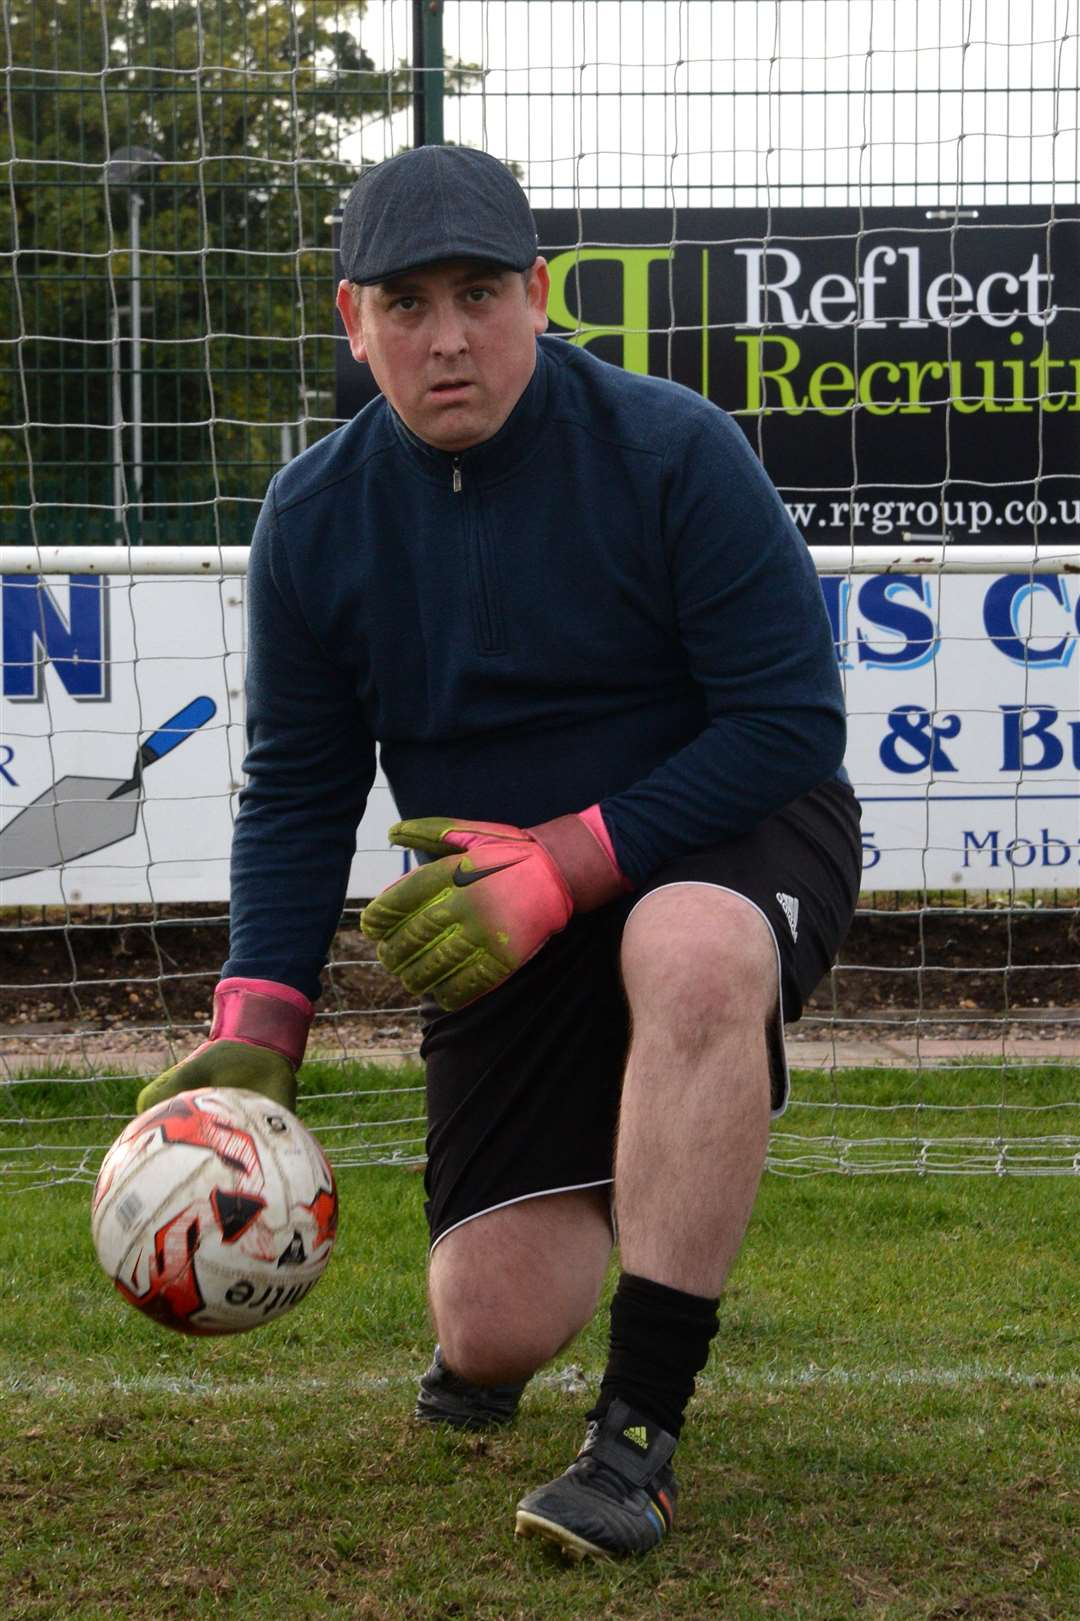 Newark Town keeper Ricky Hunter, who is the first current team assistant manager. (4688196)